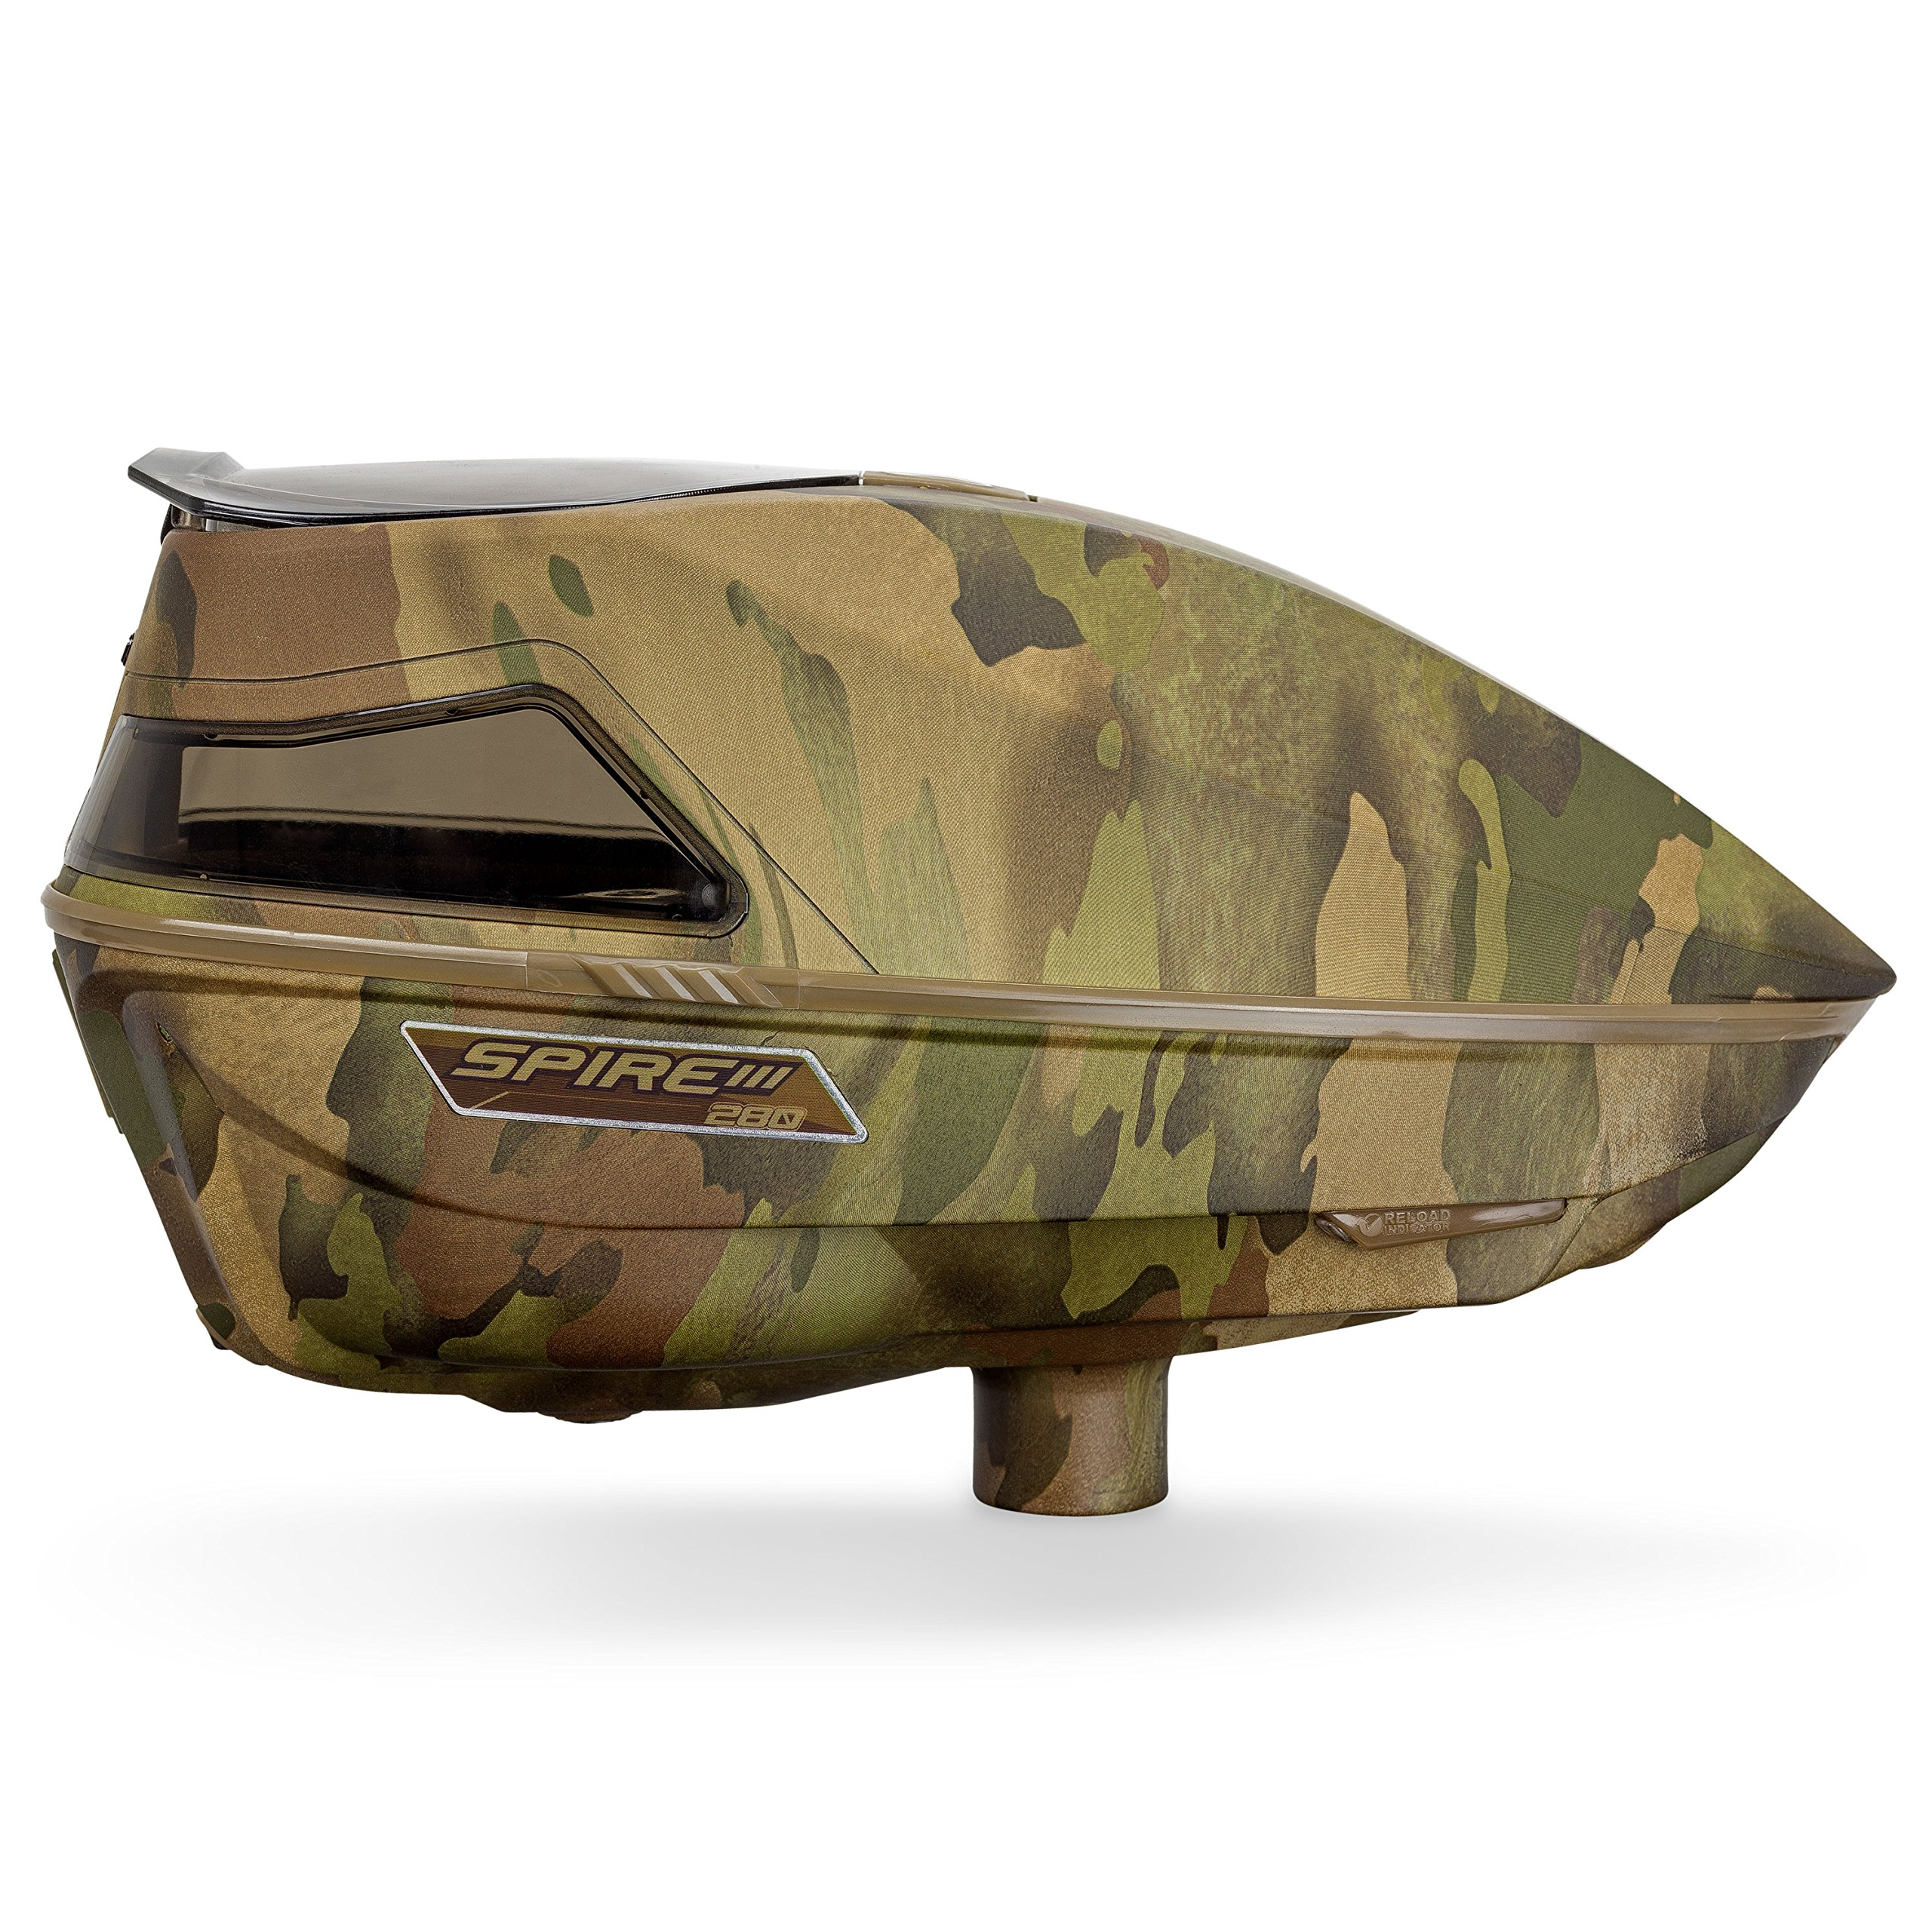 Virtue Spire III Electronic Paintball Loaders/Hoppers (280 Reality Brush Camo, Spire III 280) by Virtue Paintball